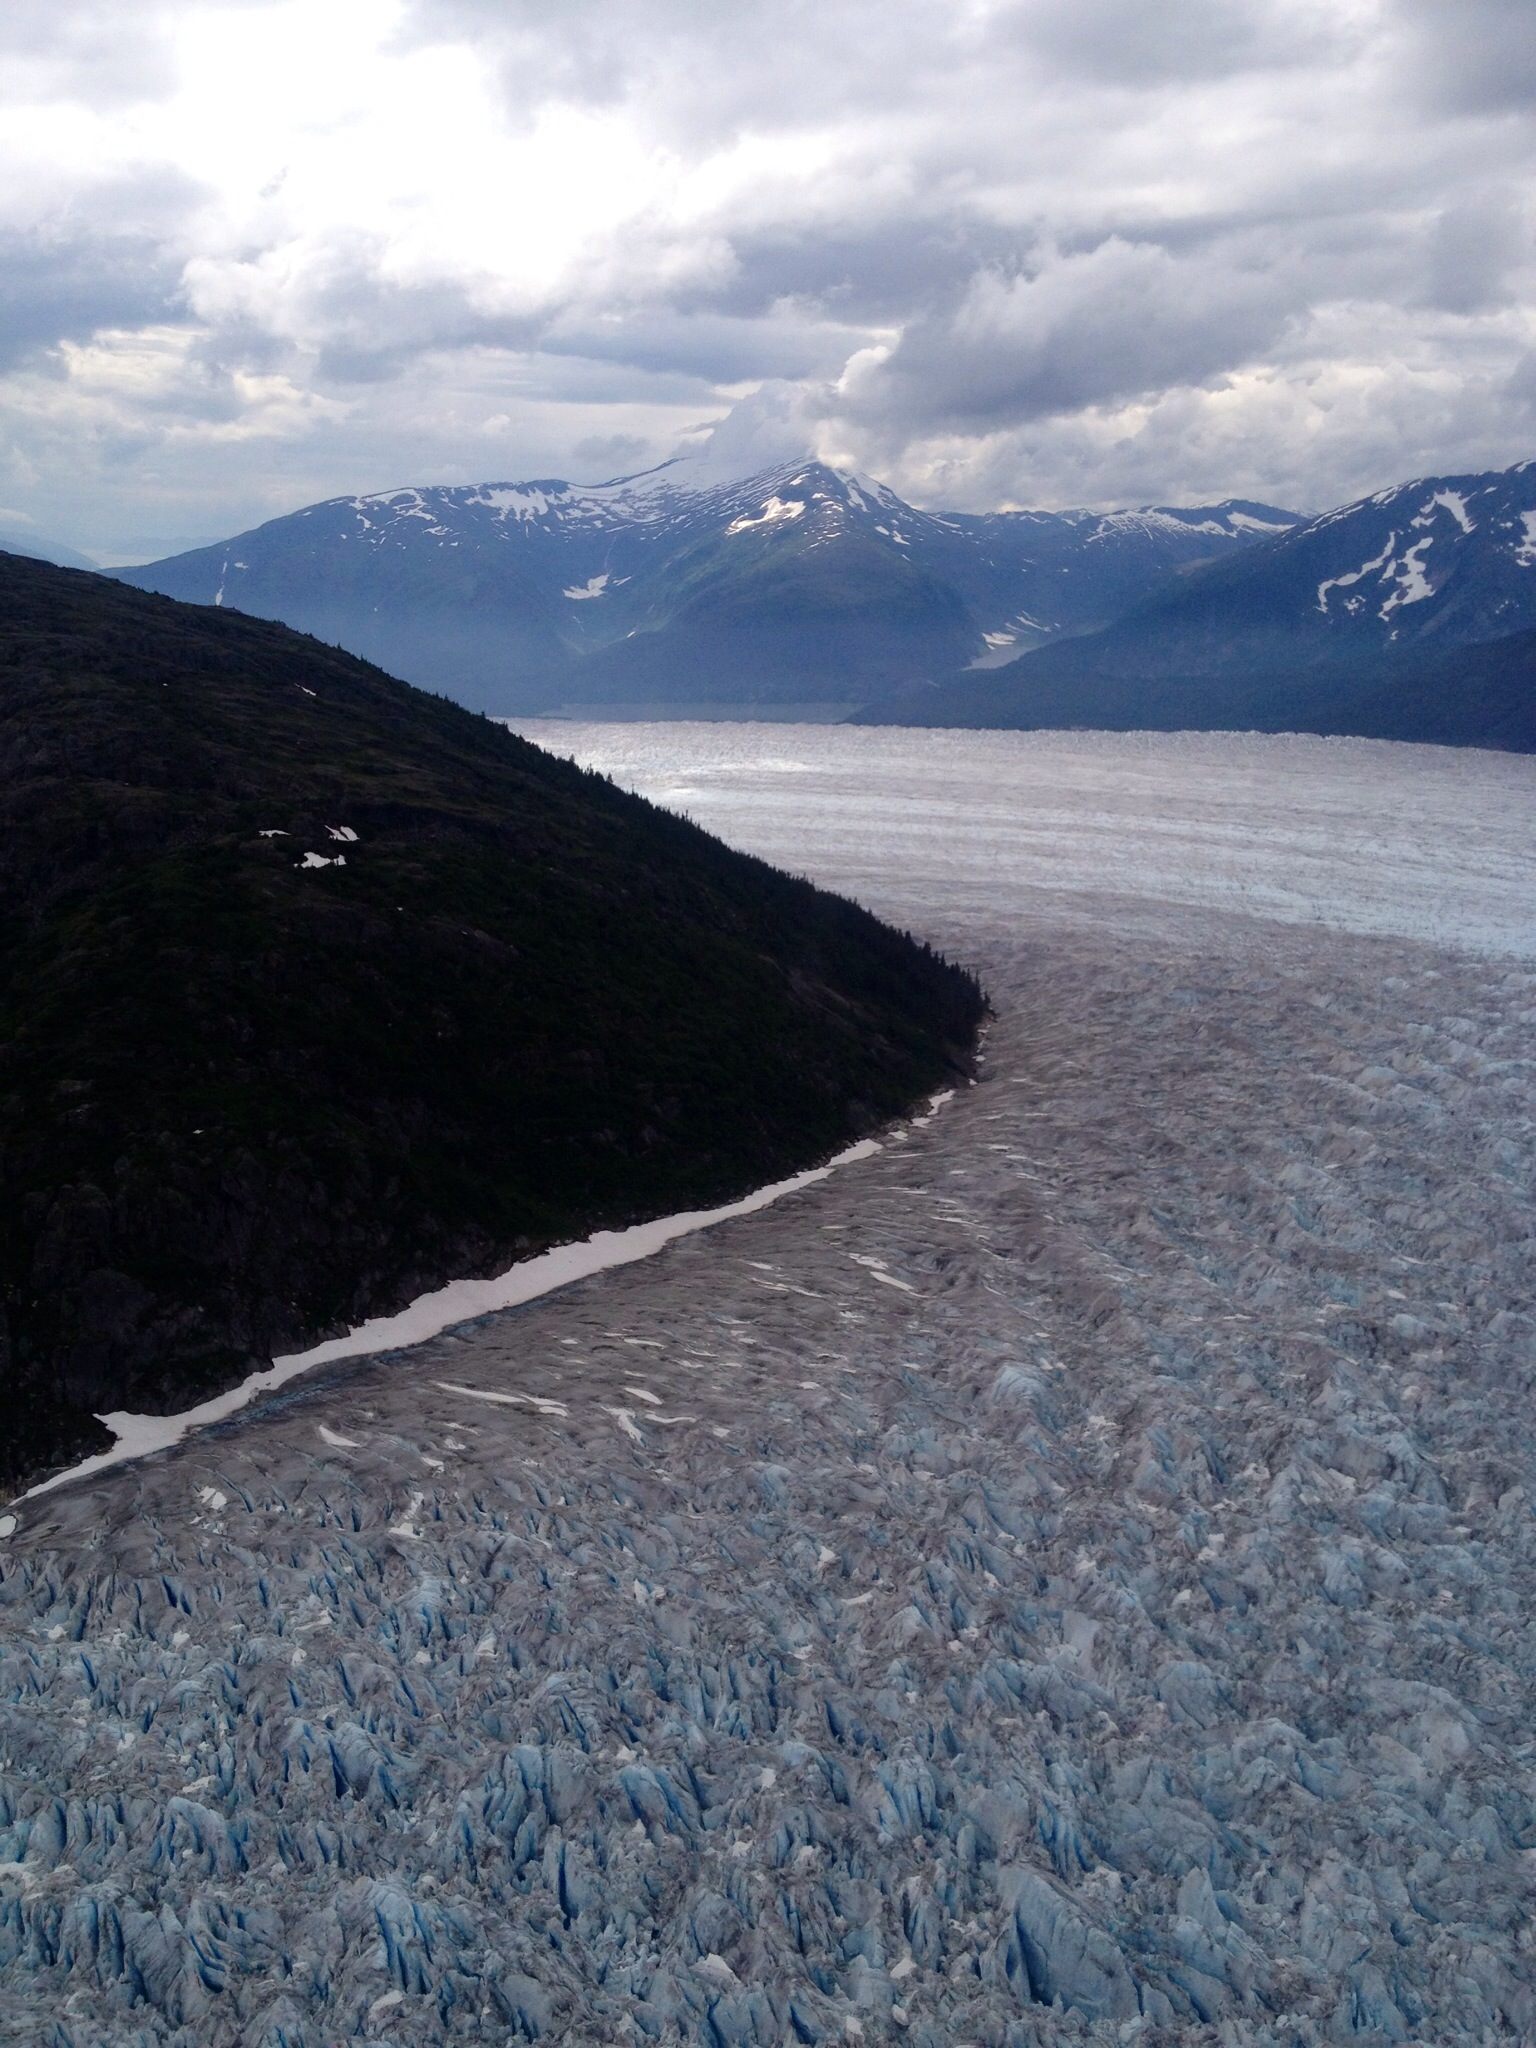 Glacier images from the seaplane... notice the blue color in the ice.